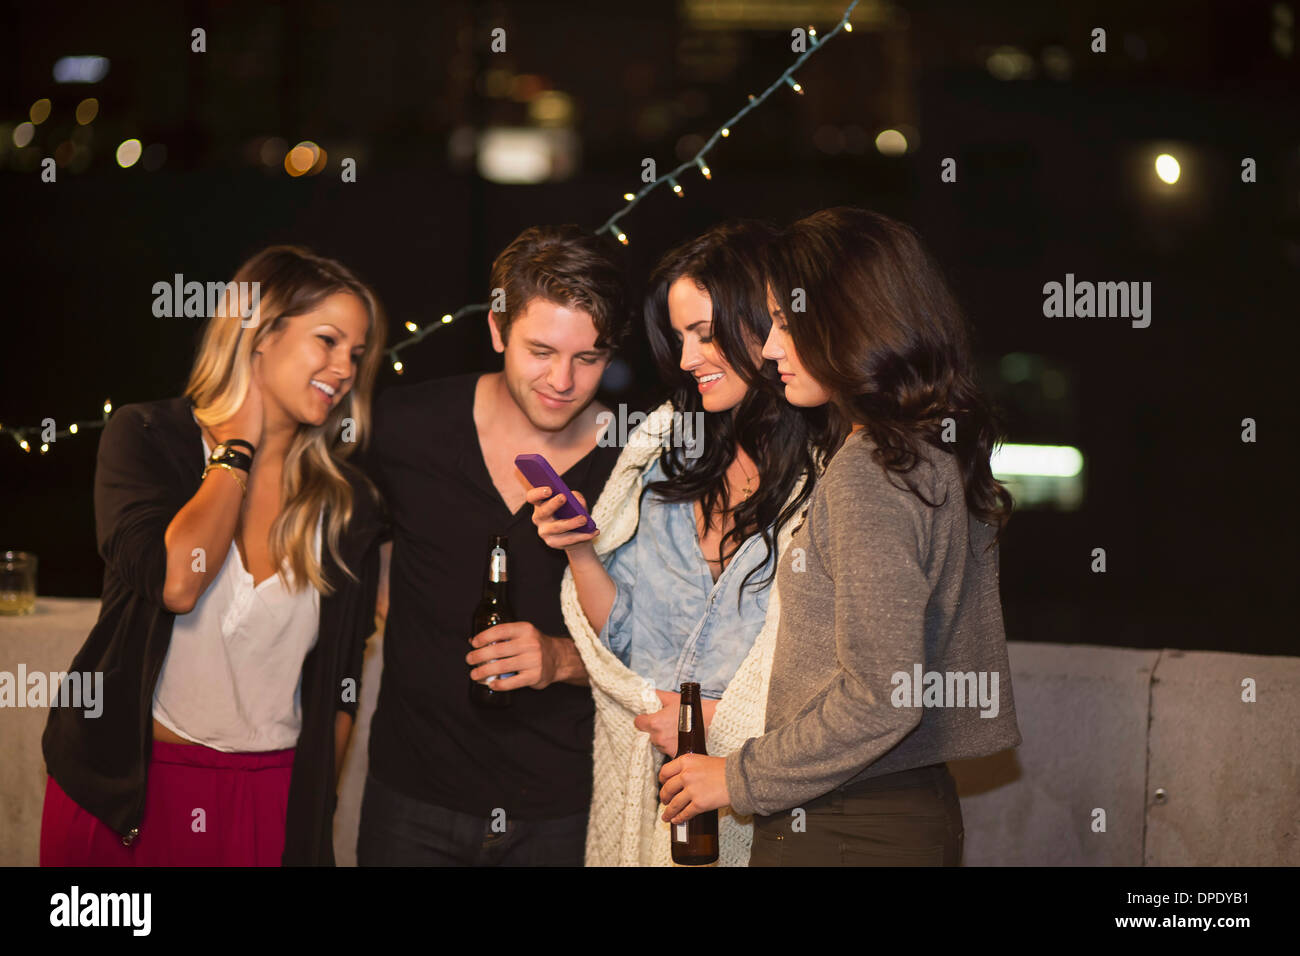 Young adult friends looking at mobile phone at rooftop party - Stock Image